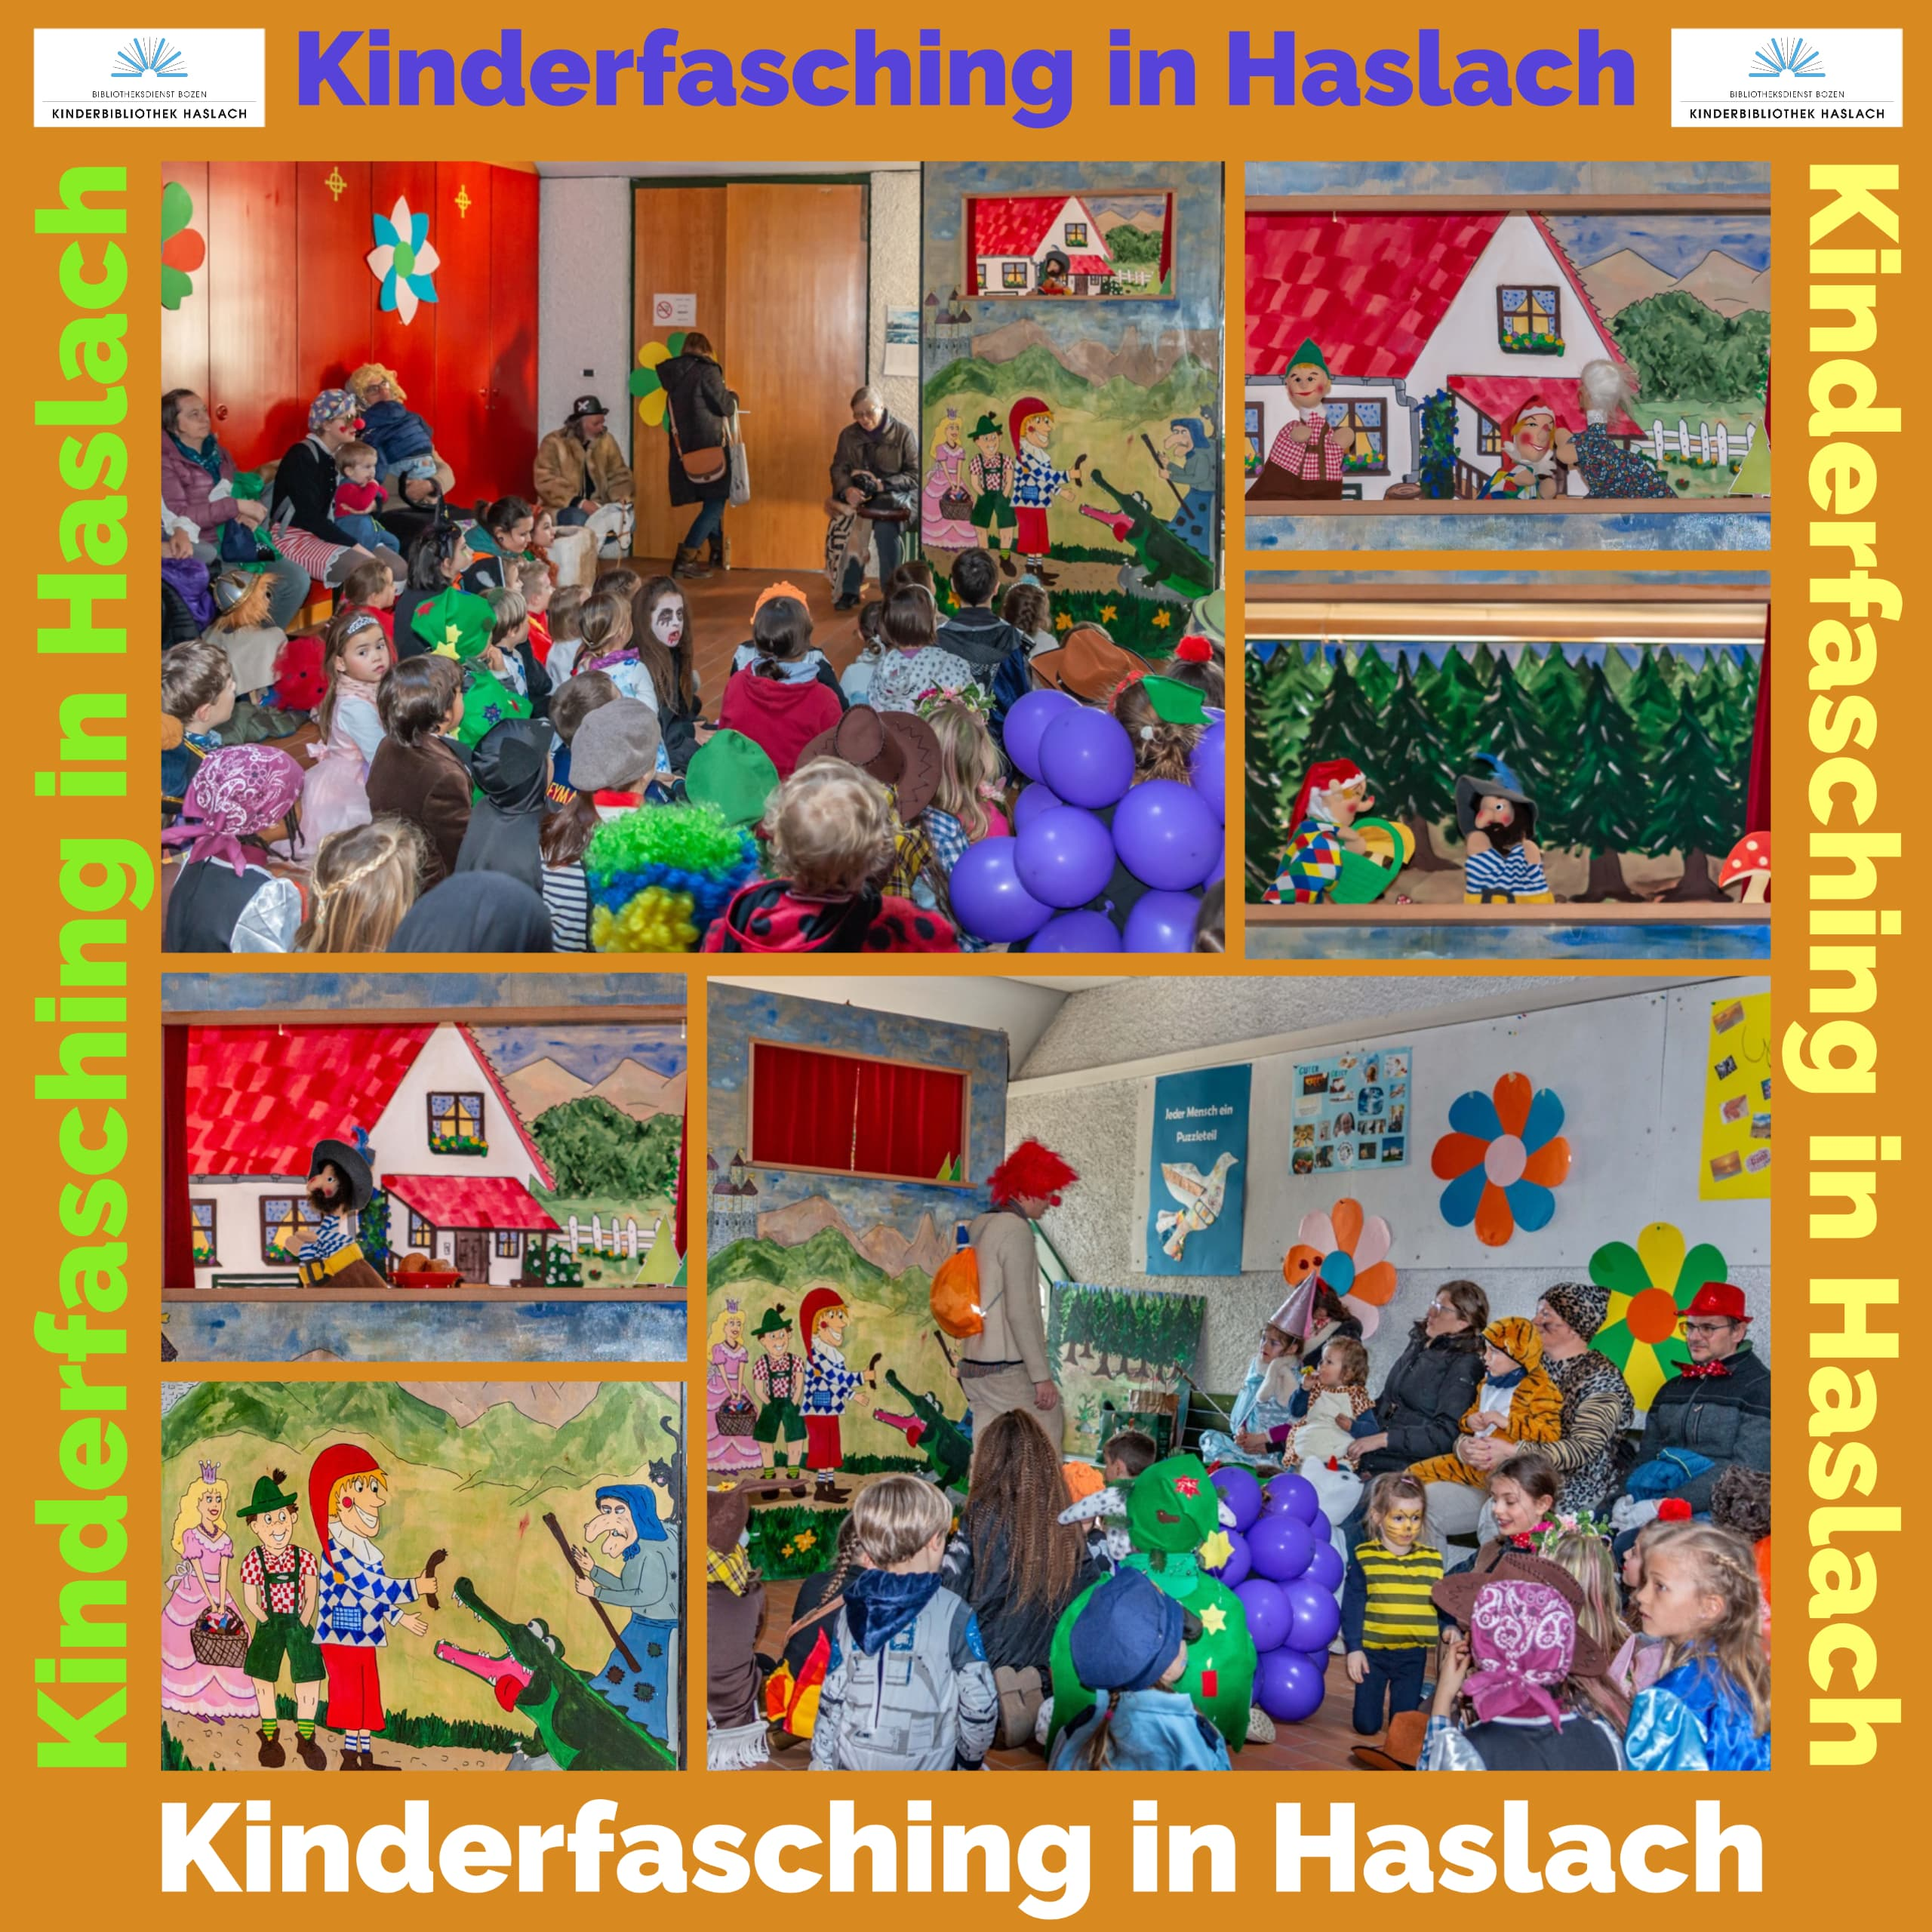 Kasperltheater beim Kinderfasching in Haslach